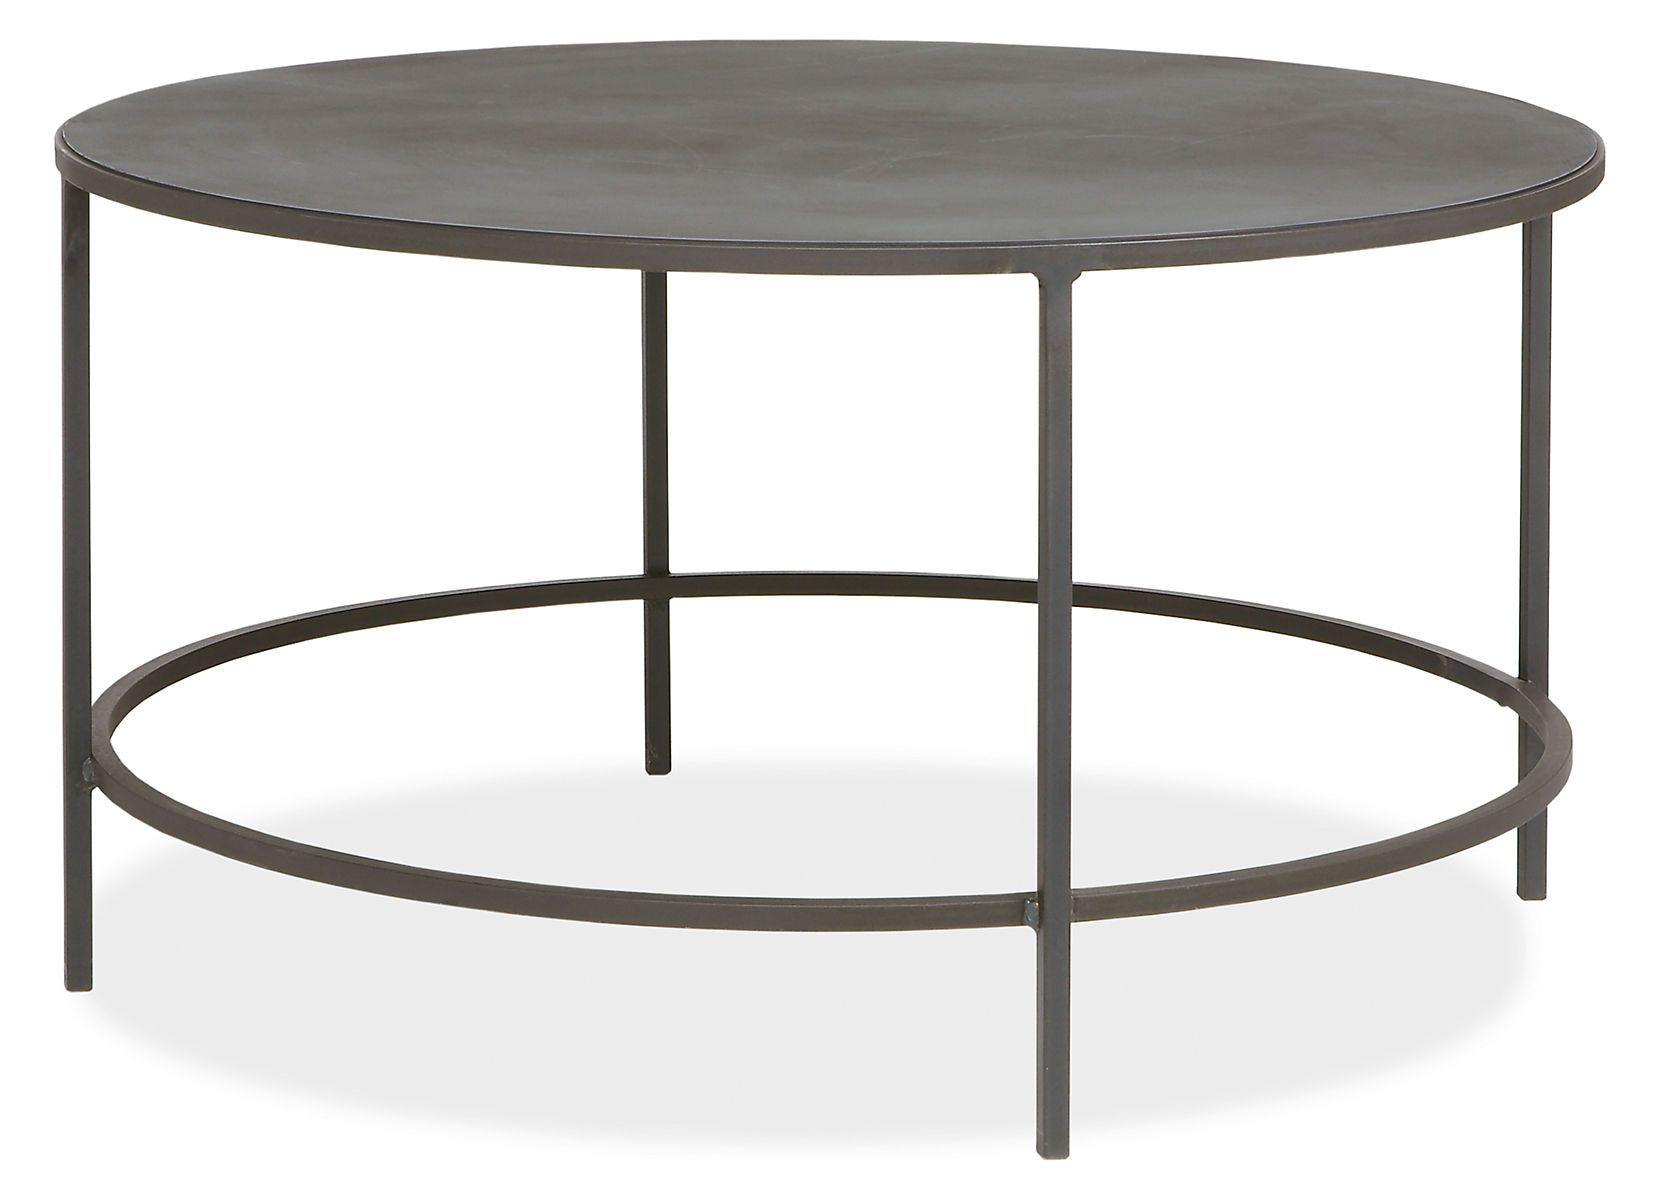 Slim Round Coffee Tables In Natural Steel Modern Coffee Tables Modern Living Room Furniture Room Board Coffee Table Cheap Coffee Table Cocktail Tables Living Room [ 1200 x 1661 Pixel ]